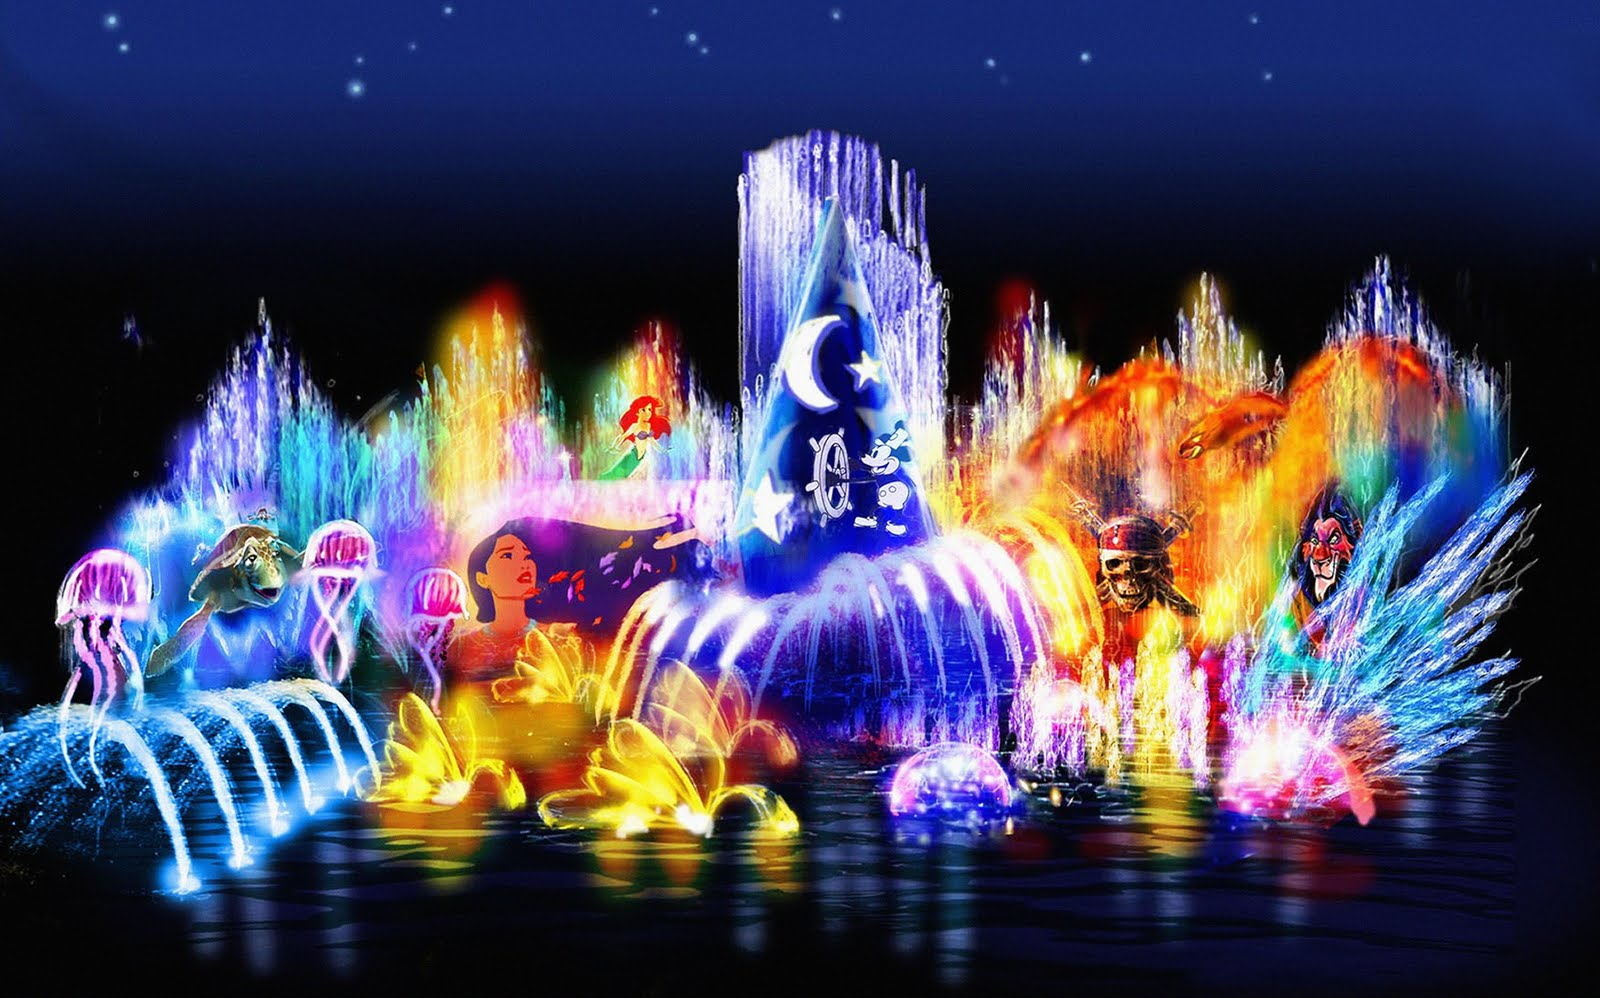 Makers Making of World of Color at Disneyland [Summer Nightastic 1600x998